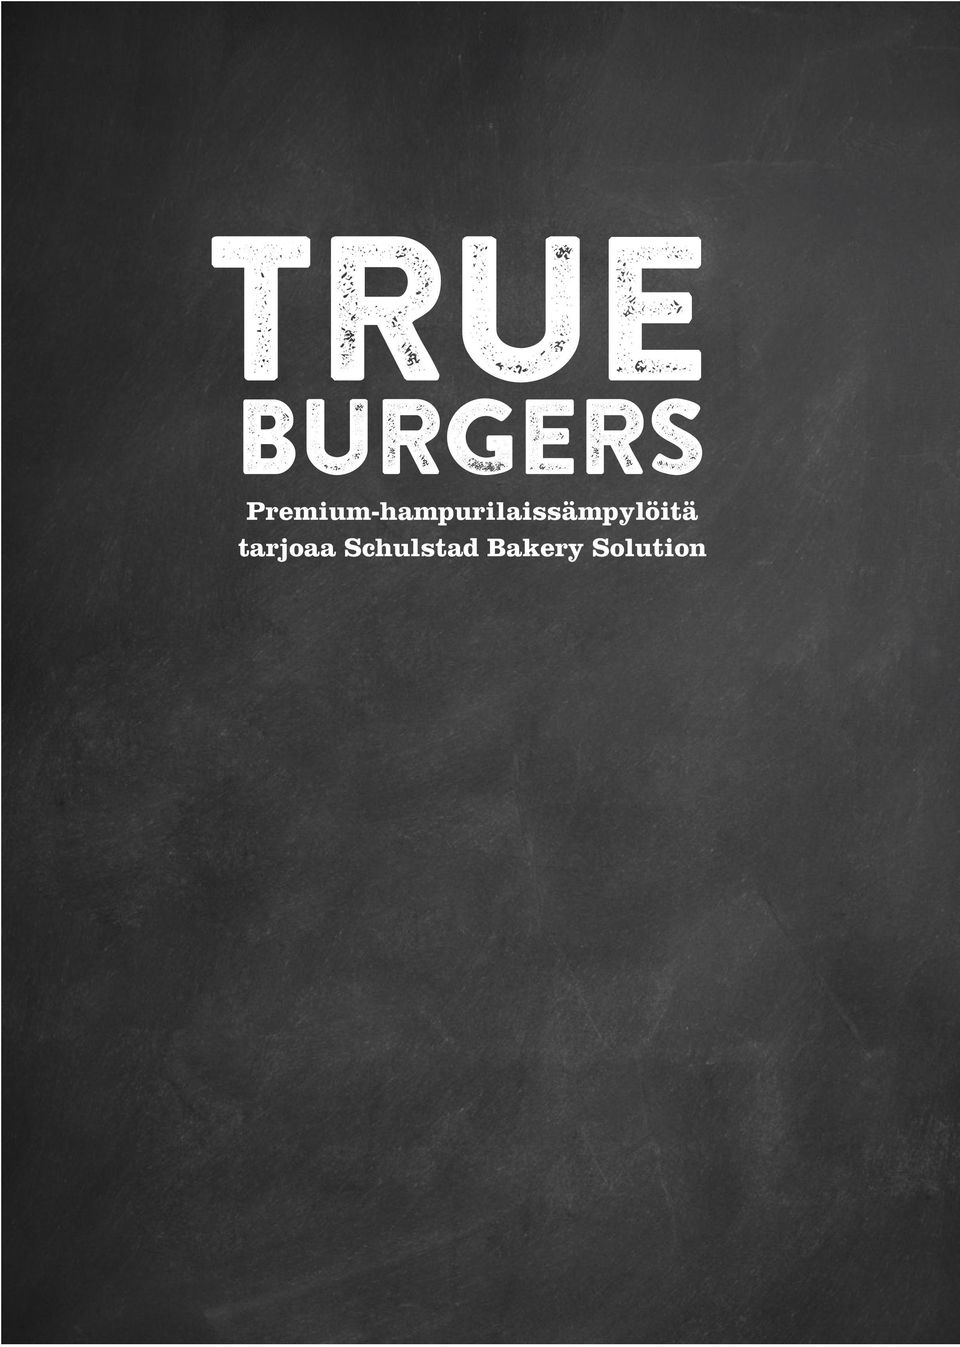 True burgers is a selection of gourmet buns that boost flavours as well as margins.